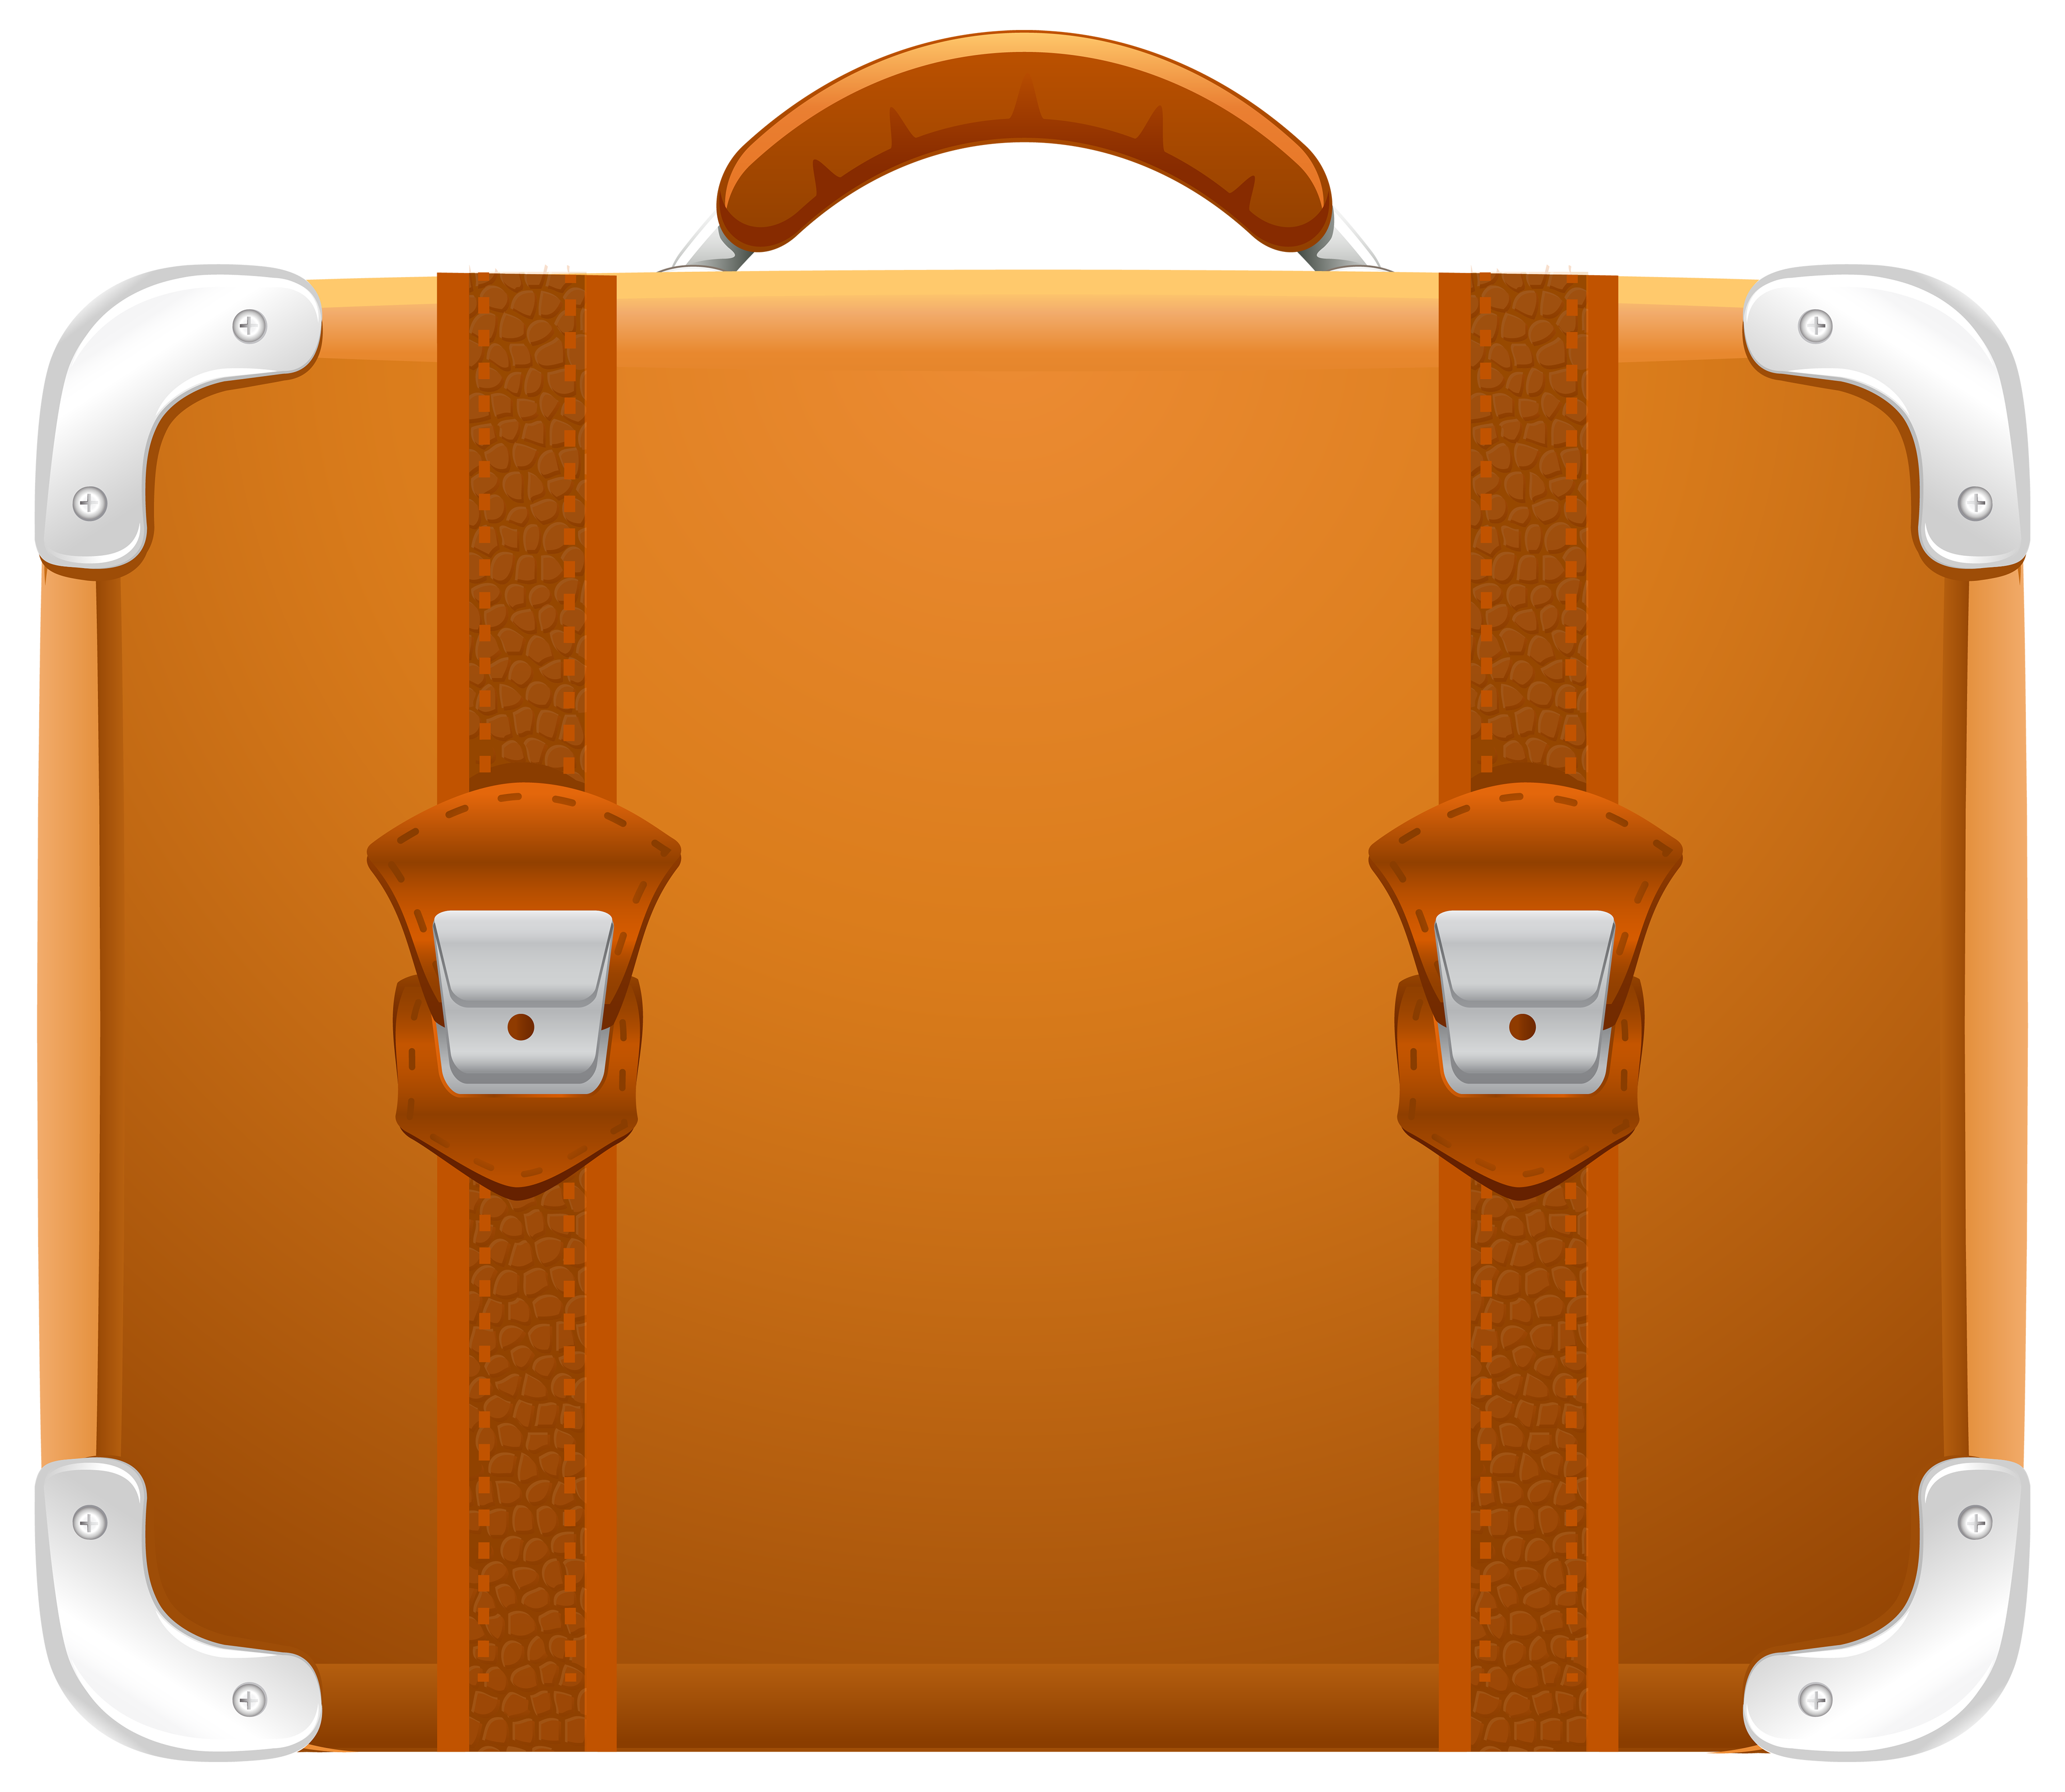 Png image gallery yopriceville. Suitcase clipart png free download